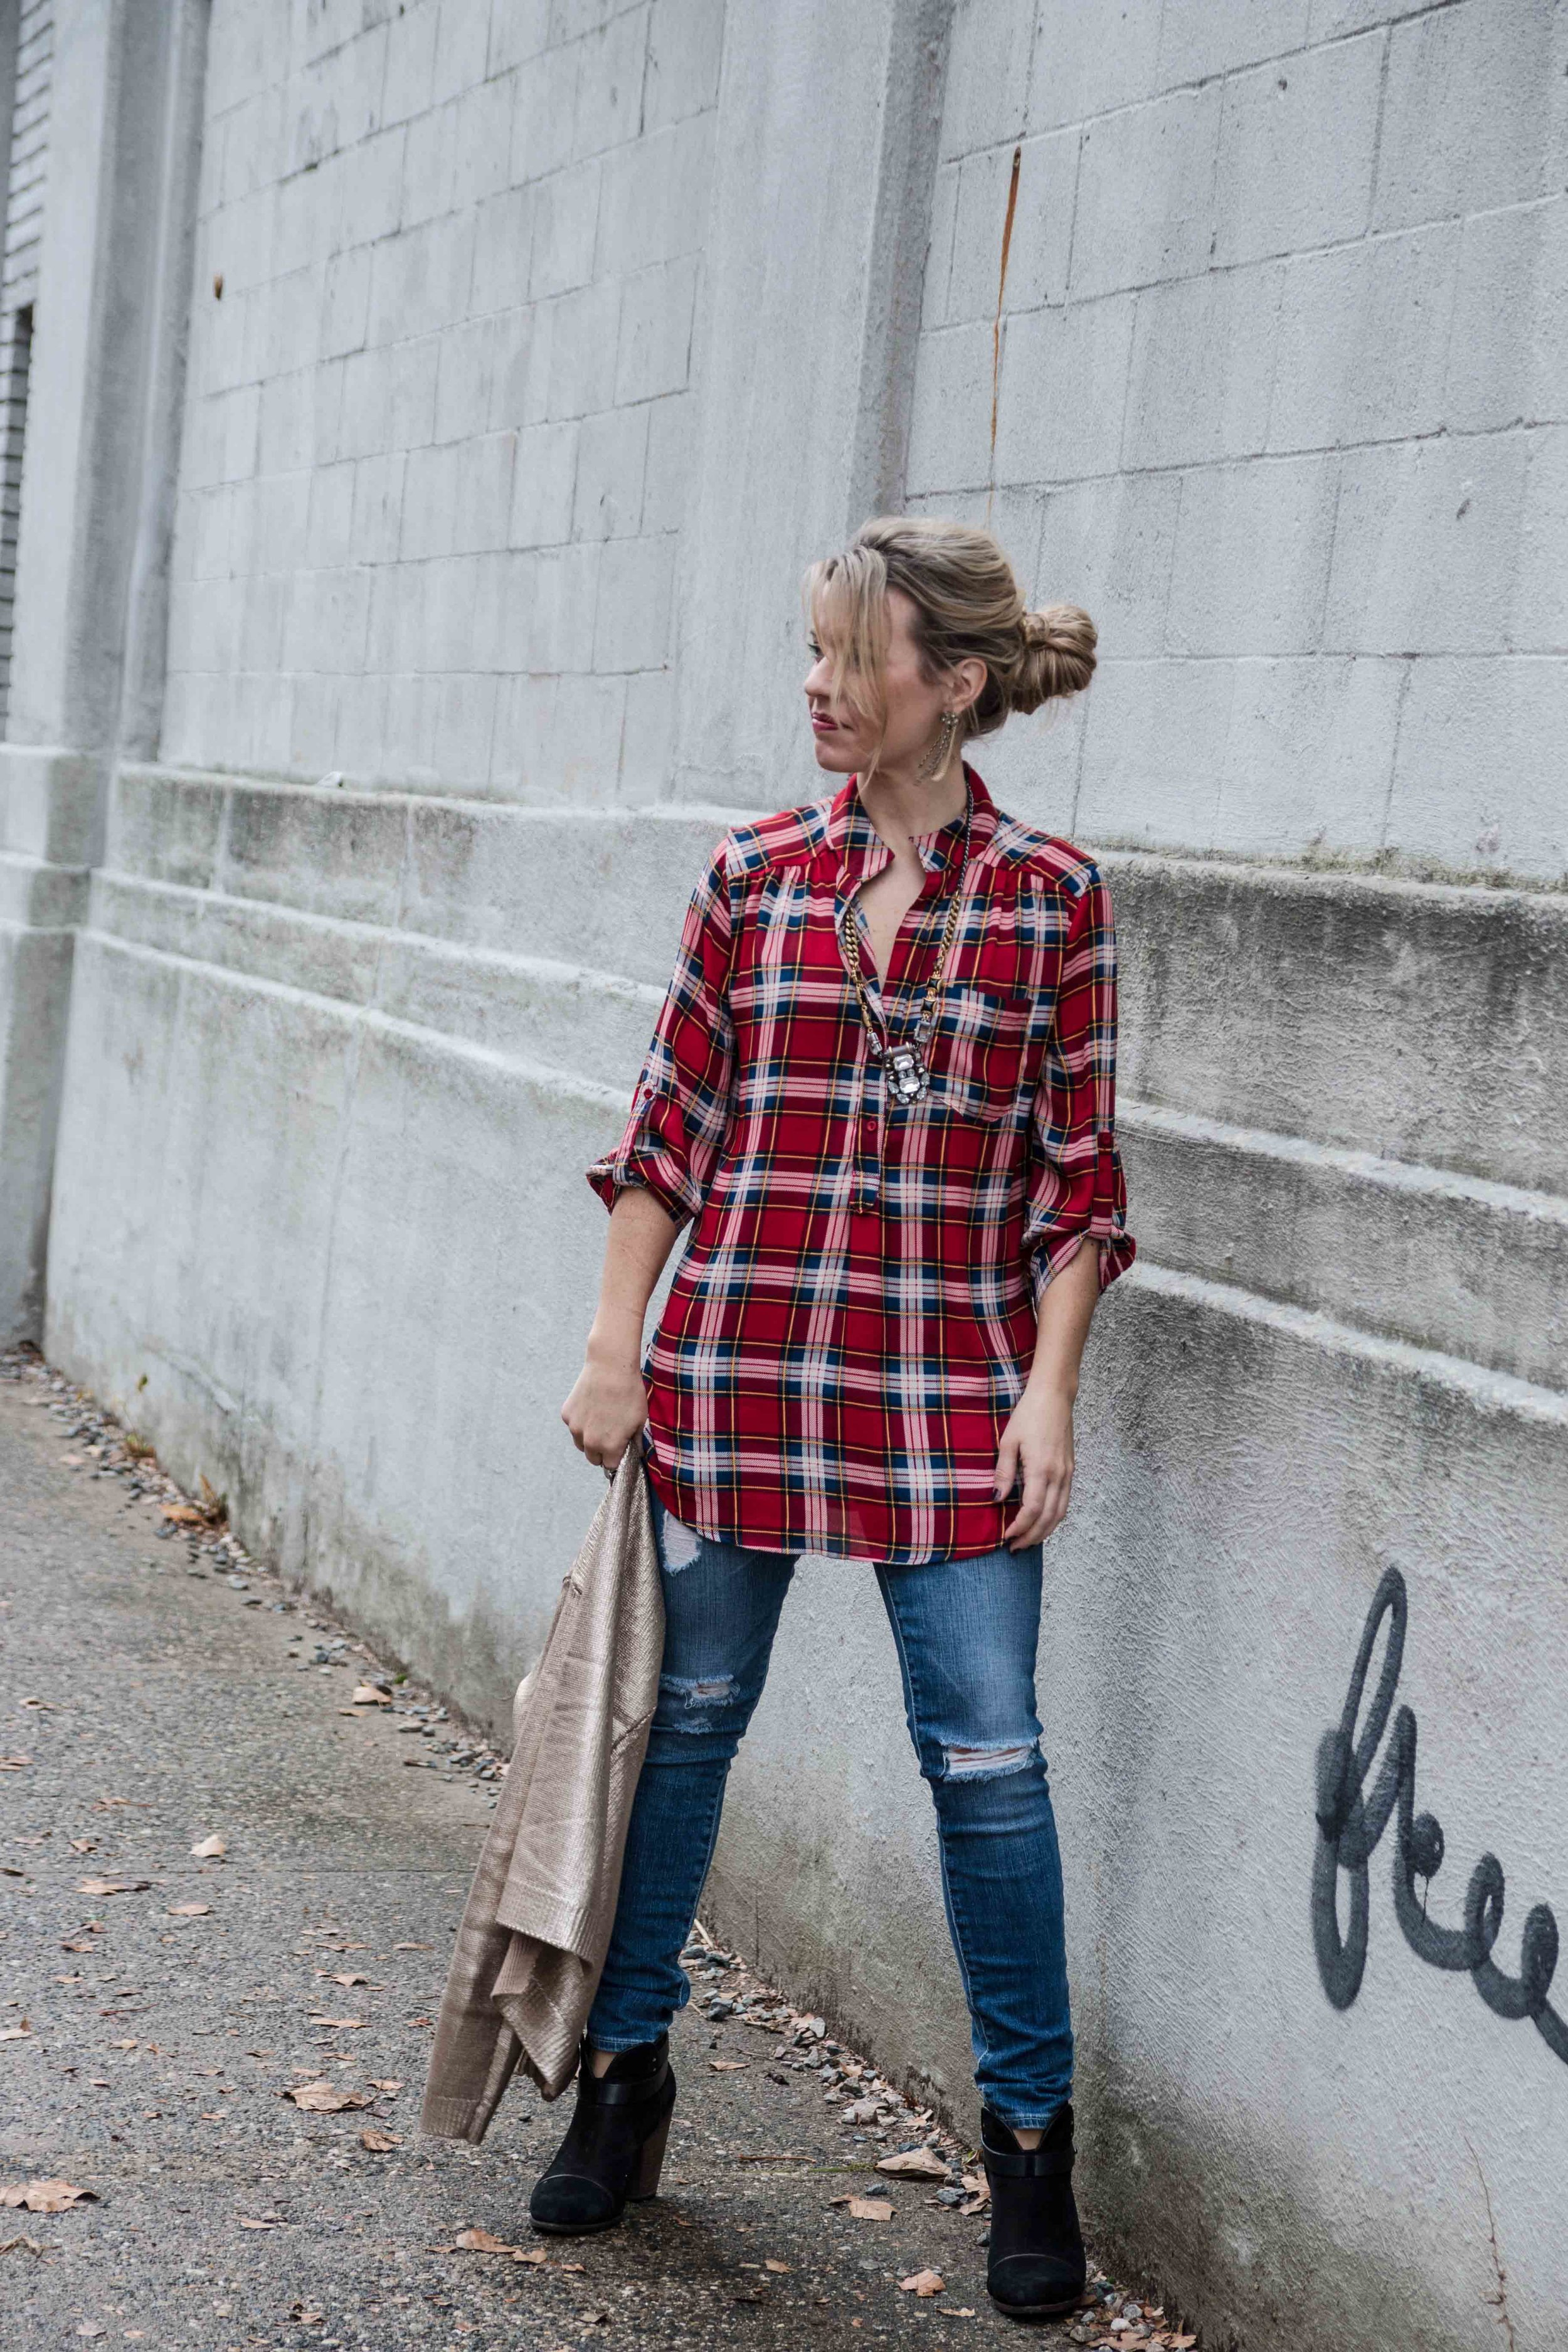 plastered in plaid